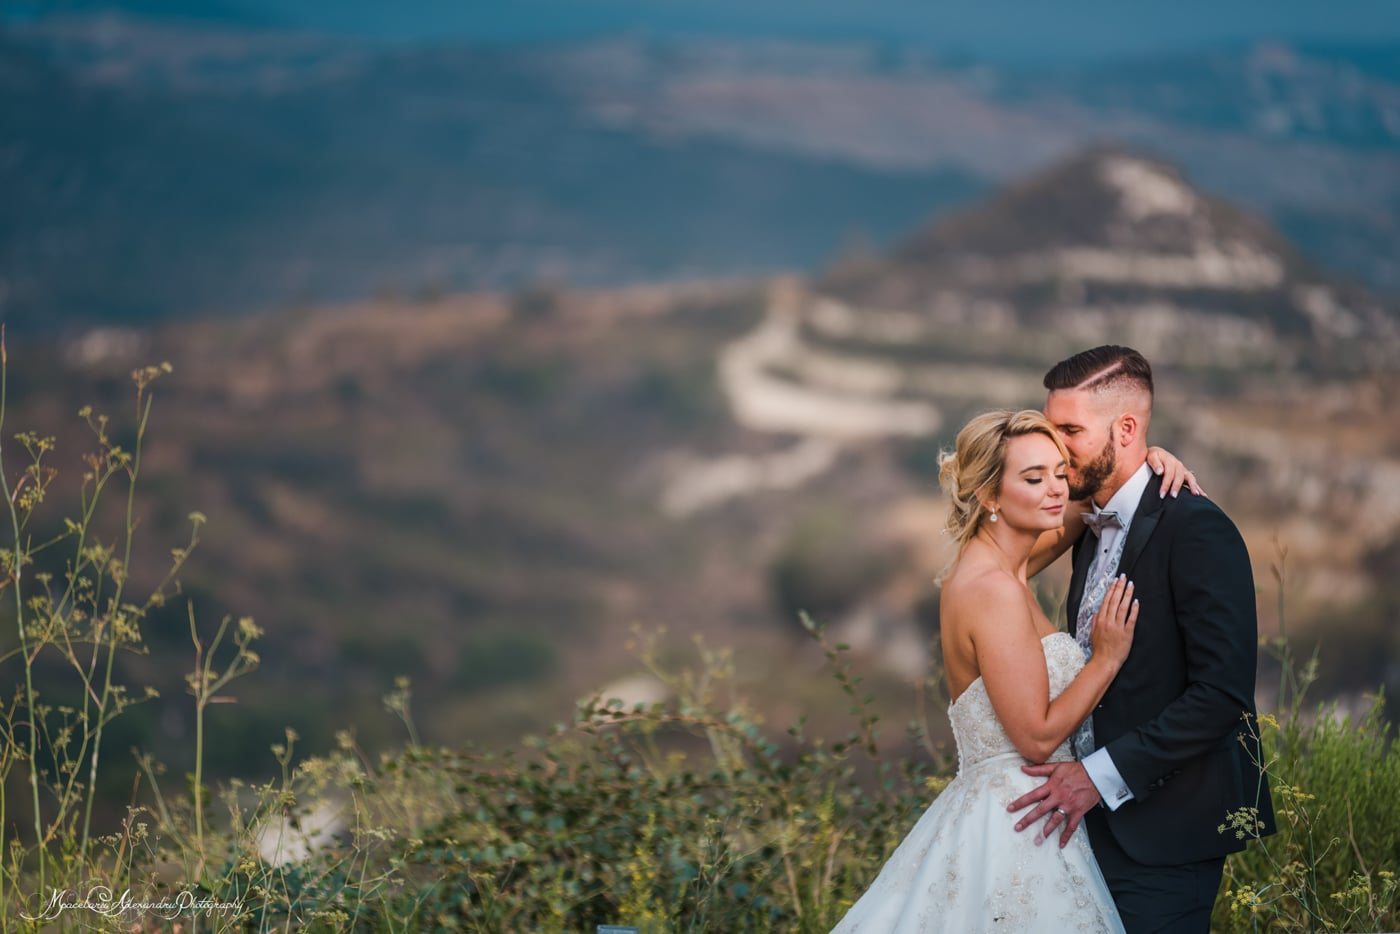 Beautiful wedding photo in the mountains, cyprus wedding photographer